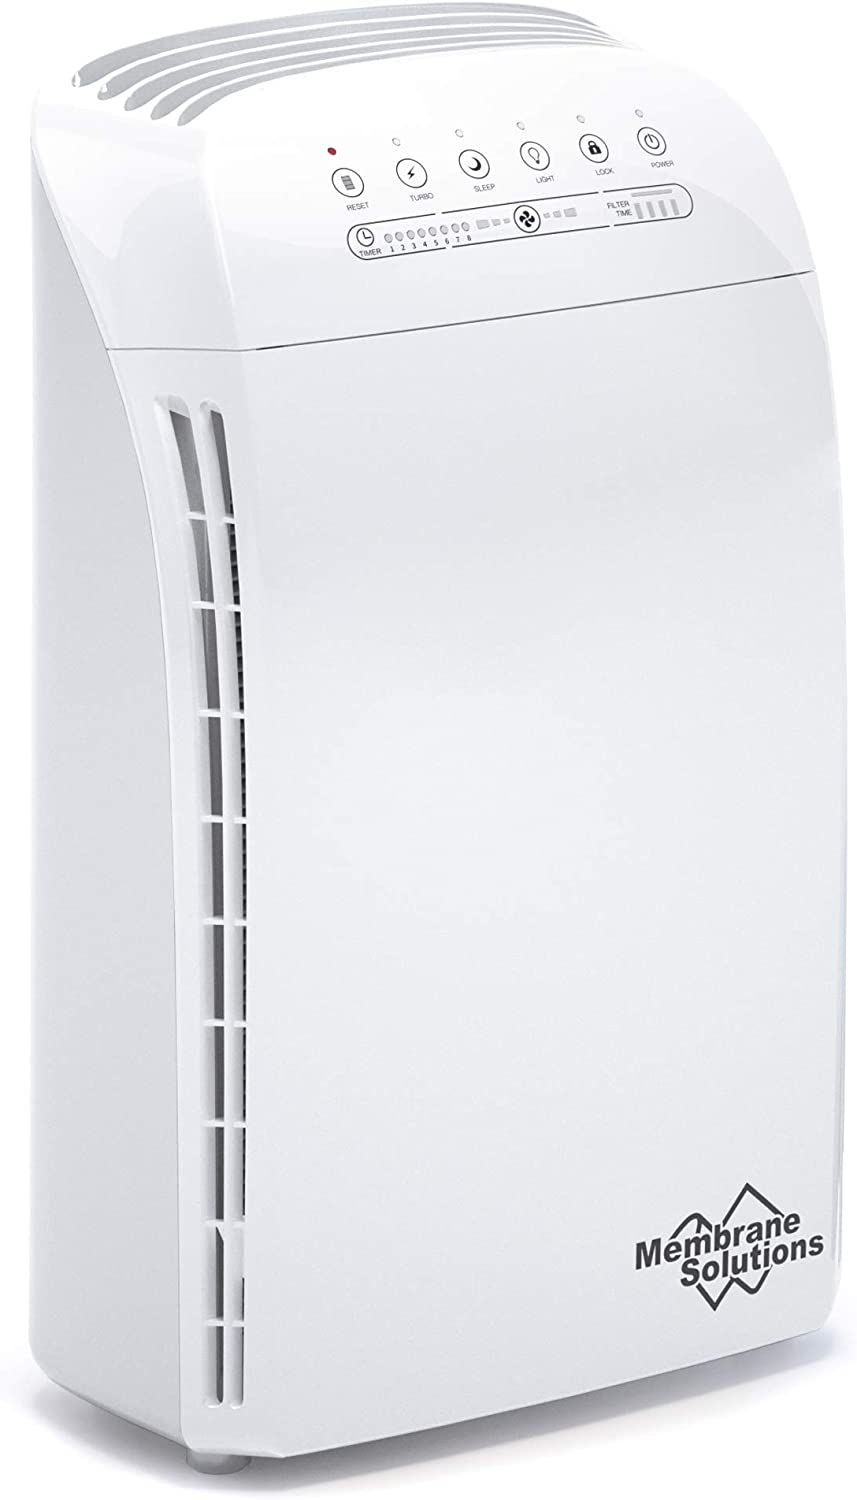 MSA3 Air Purifier for Home Large Room and Bedroom with True HEPA Filter, 100% Ozone Free Air Cleaner for Smokers, Pet and Allergies Remove 99.97% Allergens, Dust, Odor, Smoke, Pollen, Mold